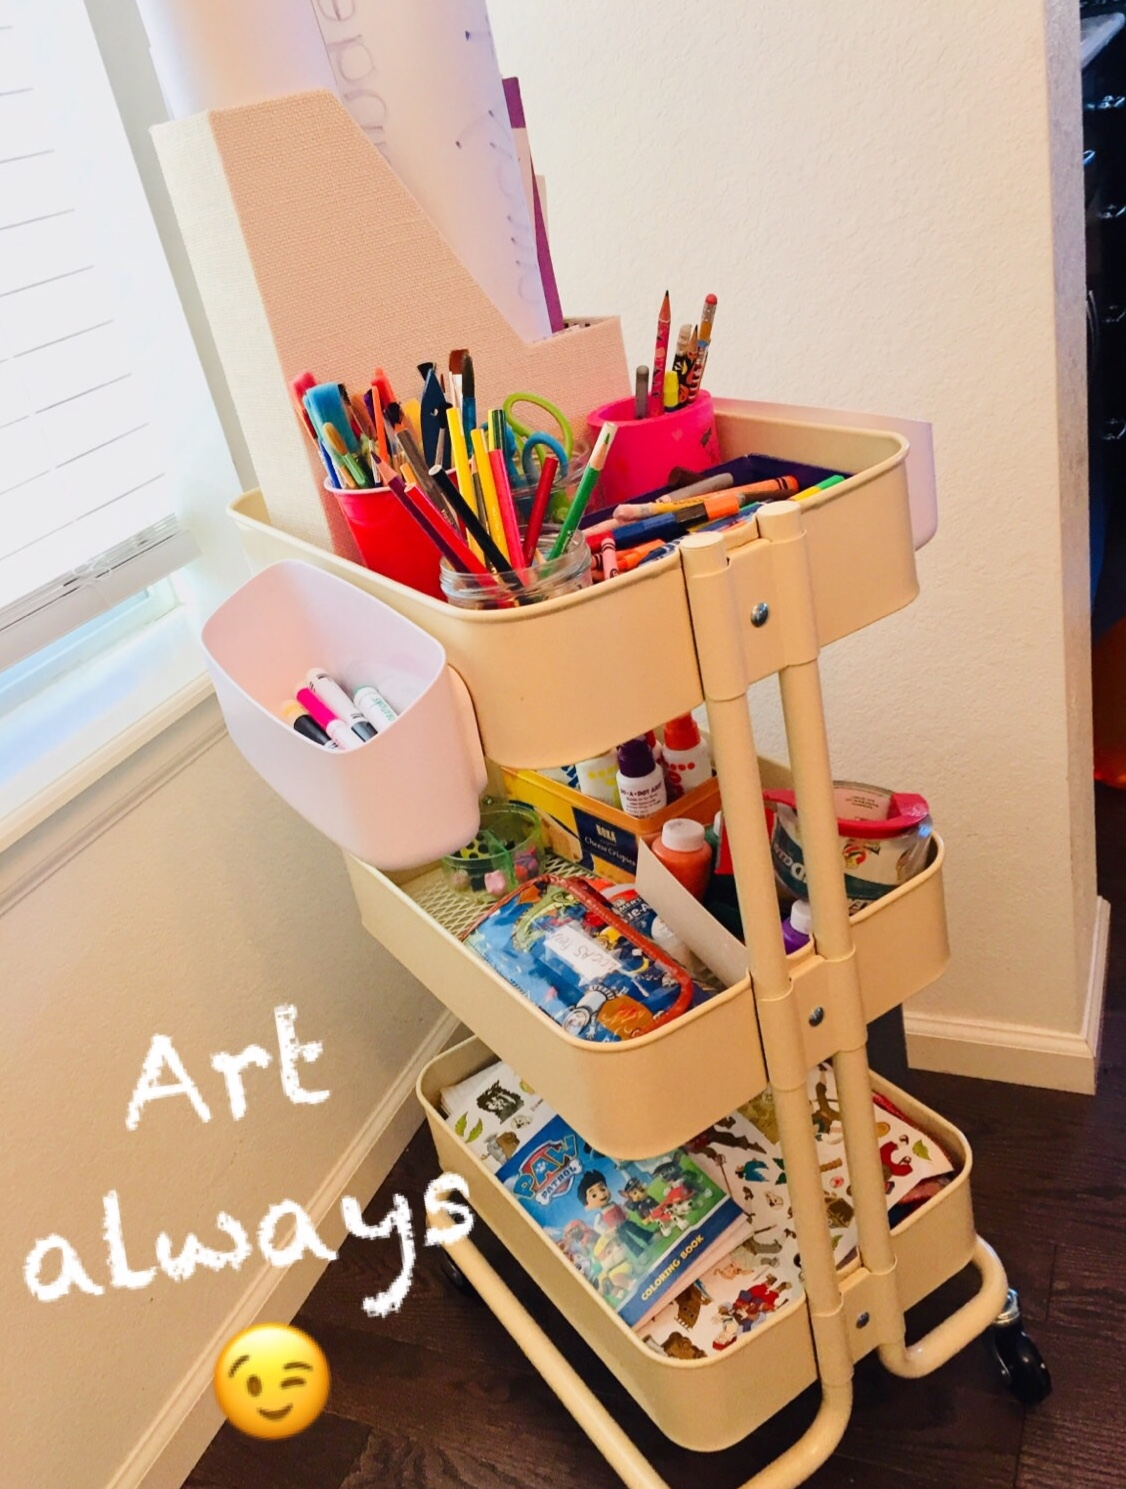 Art cart:  We love our art cart. It is very nice to be able to roll it around the house and hide it when we need to.  Different kinds of paper, scissors, markers, crayons, dot paint, paint, paint brushes, glitter, glue, stickers, tape…